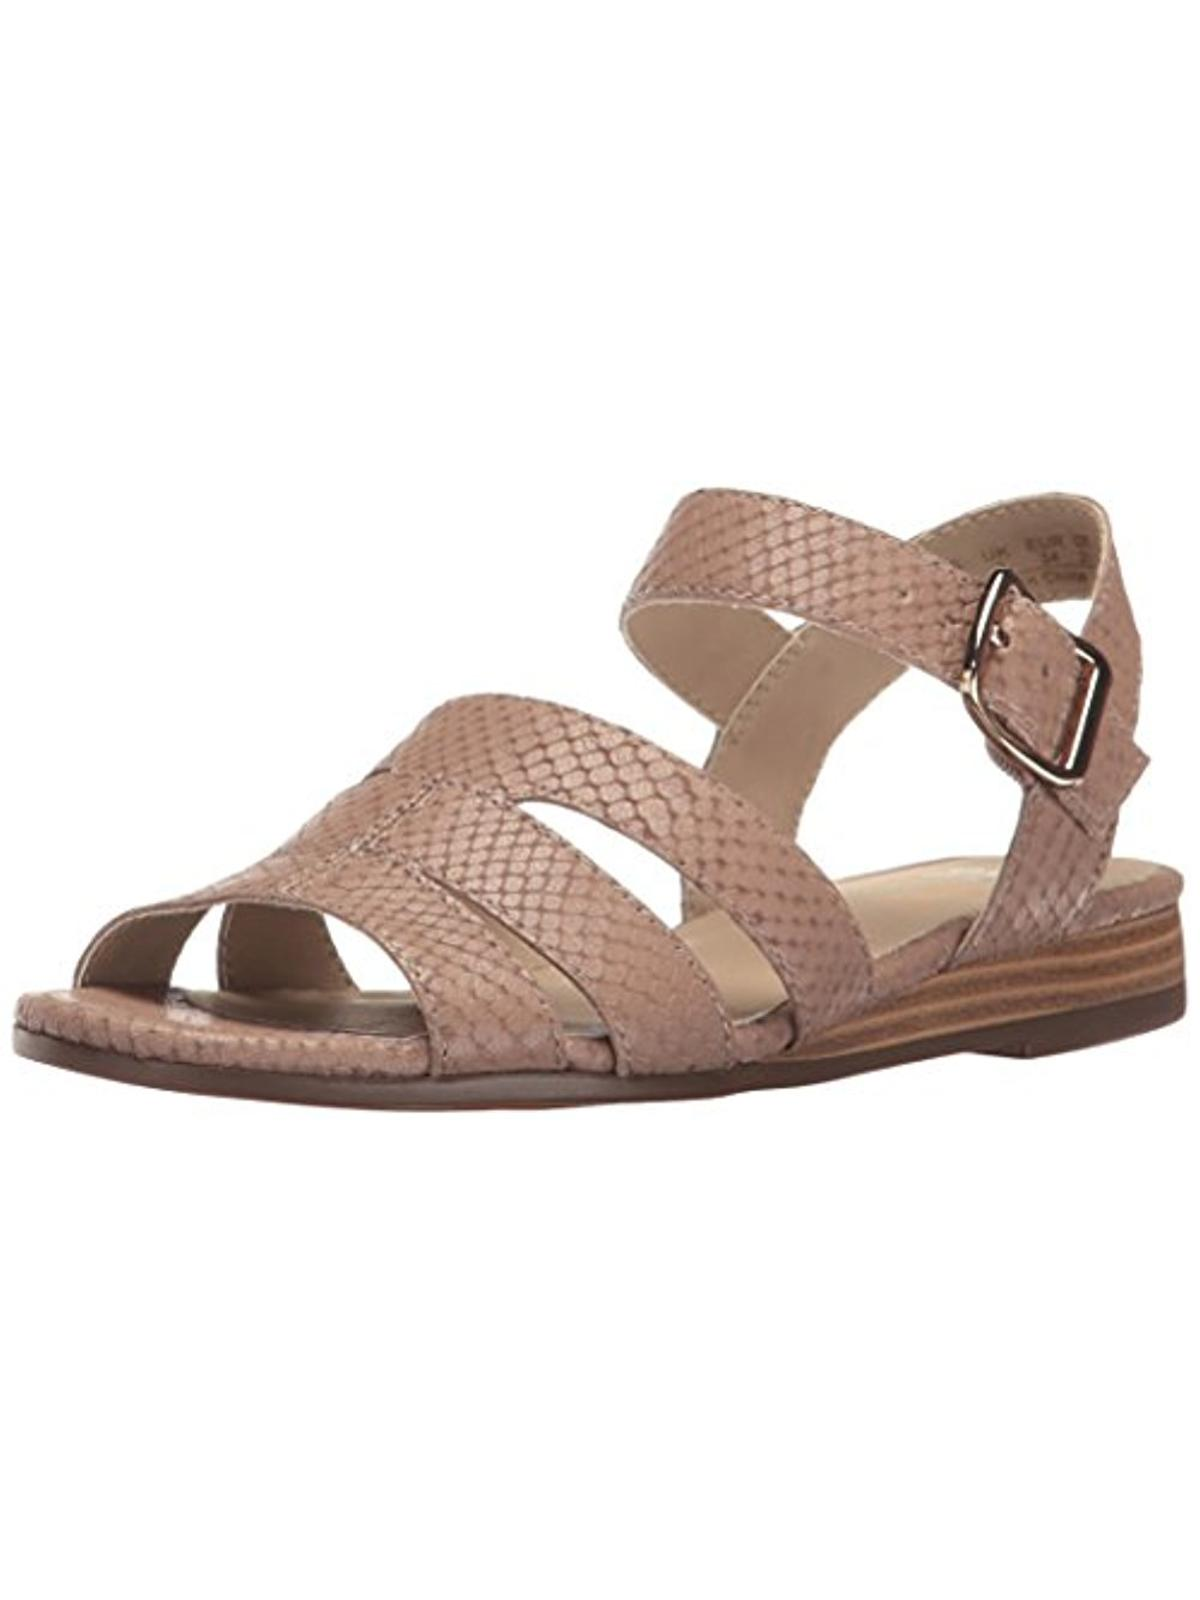 Naturalizer Womens Kaye Snake Print Open Toe Strappy Sandals by Naturalizer